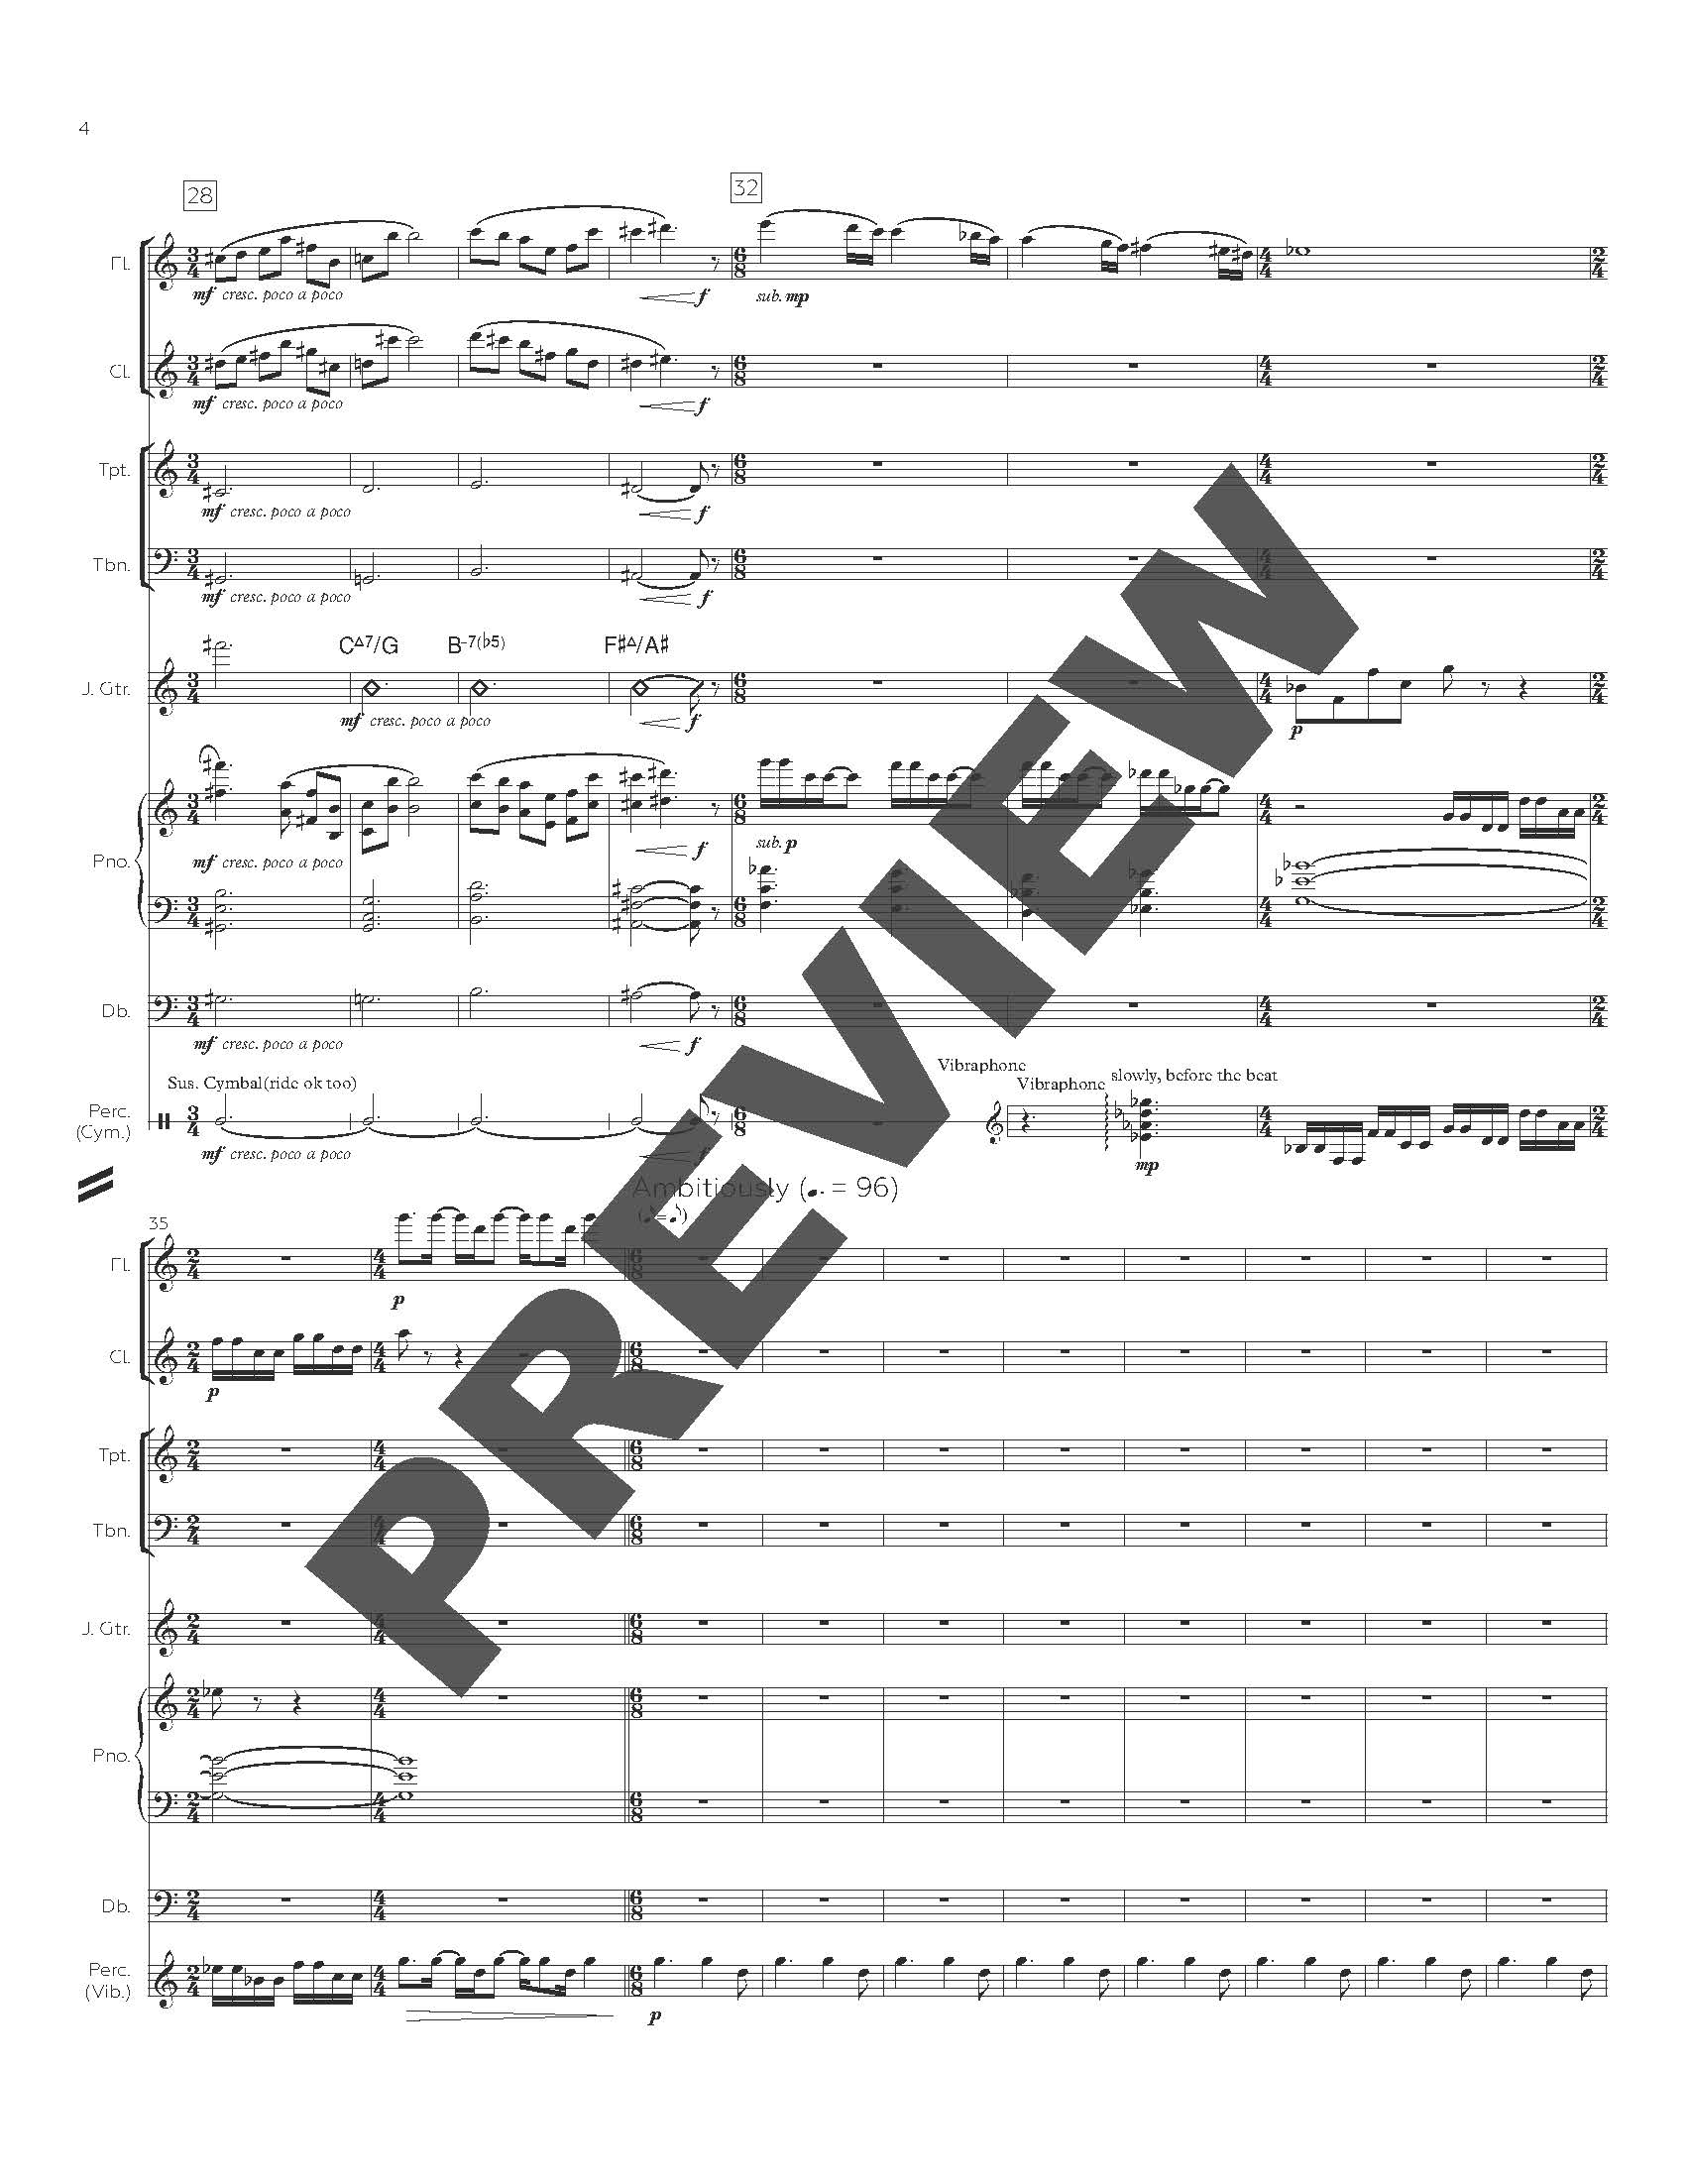 Study in Gold - Full Score_Page_06.jpg